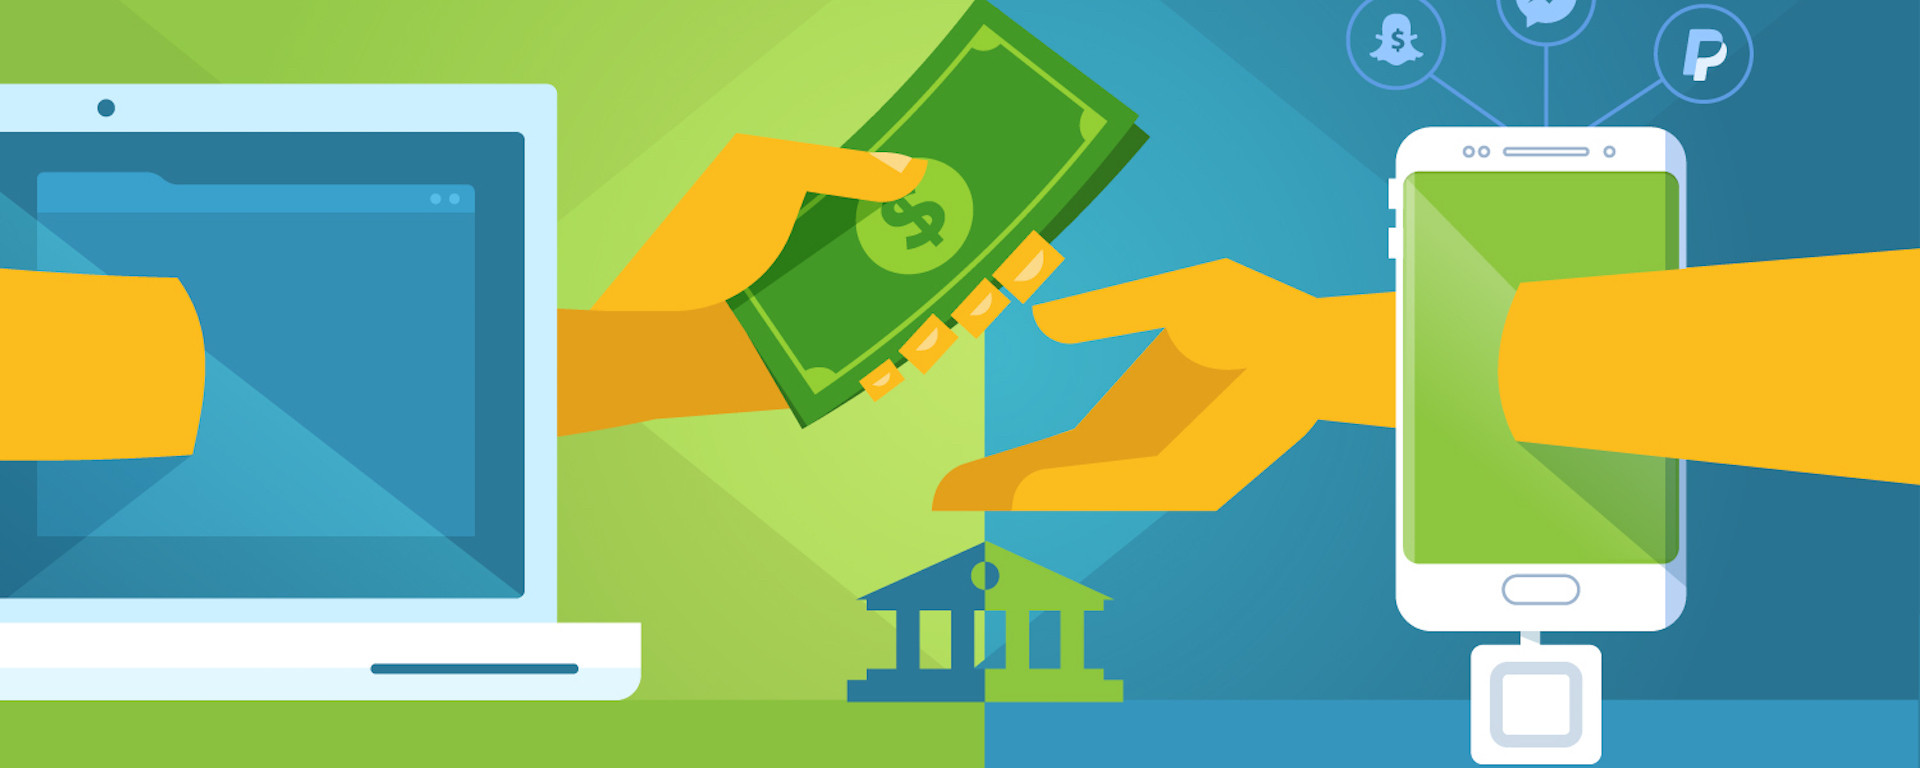 Peer-to-peer lending offers the opportunity to earn eight to 30 percent on loans.